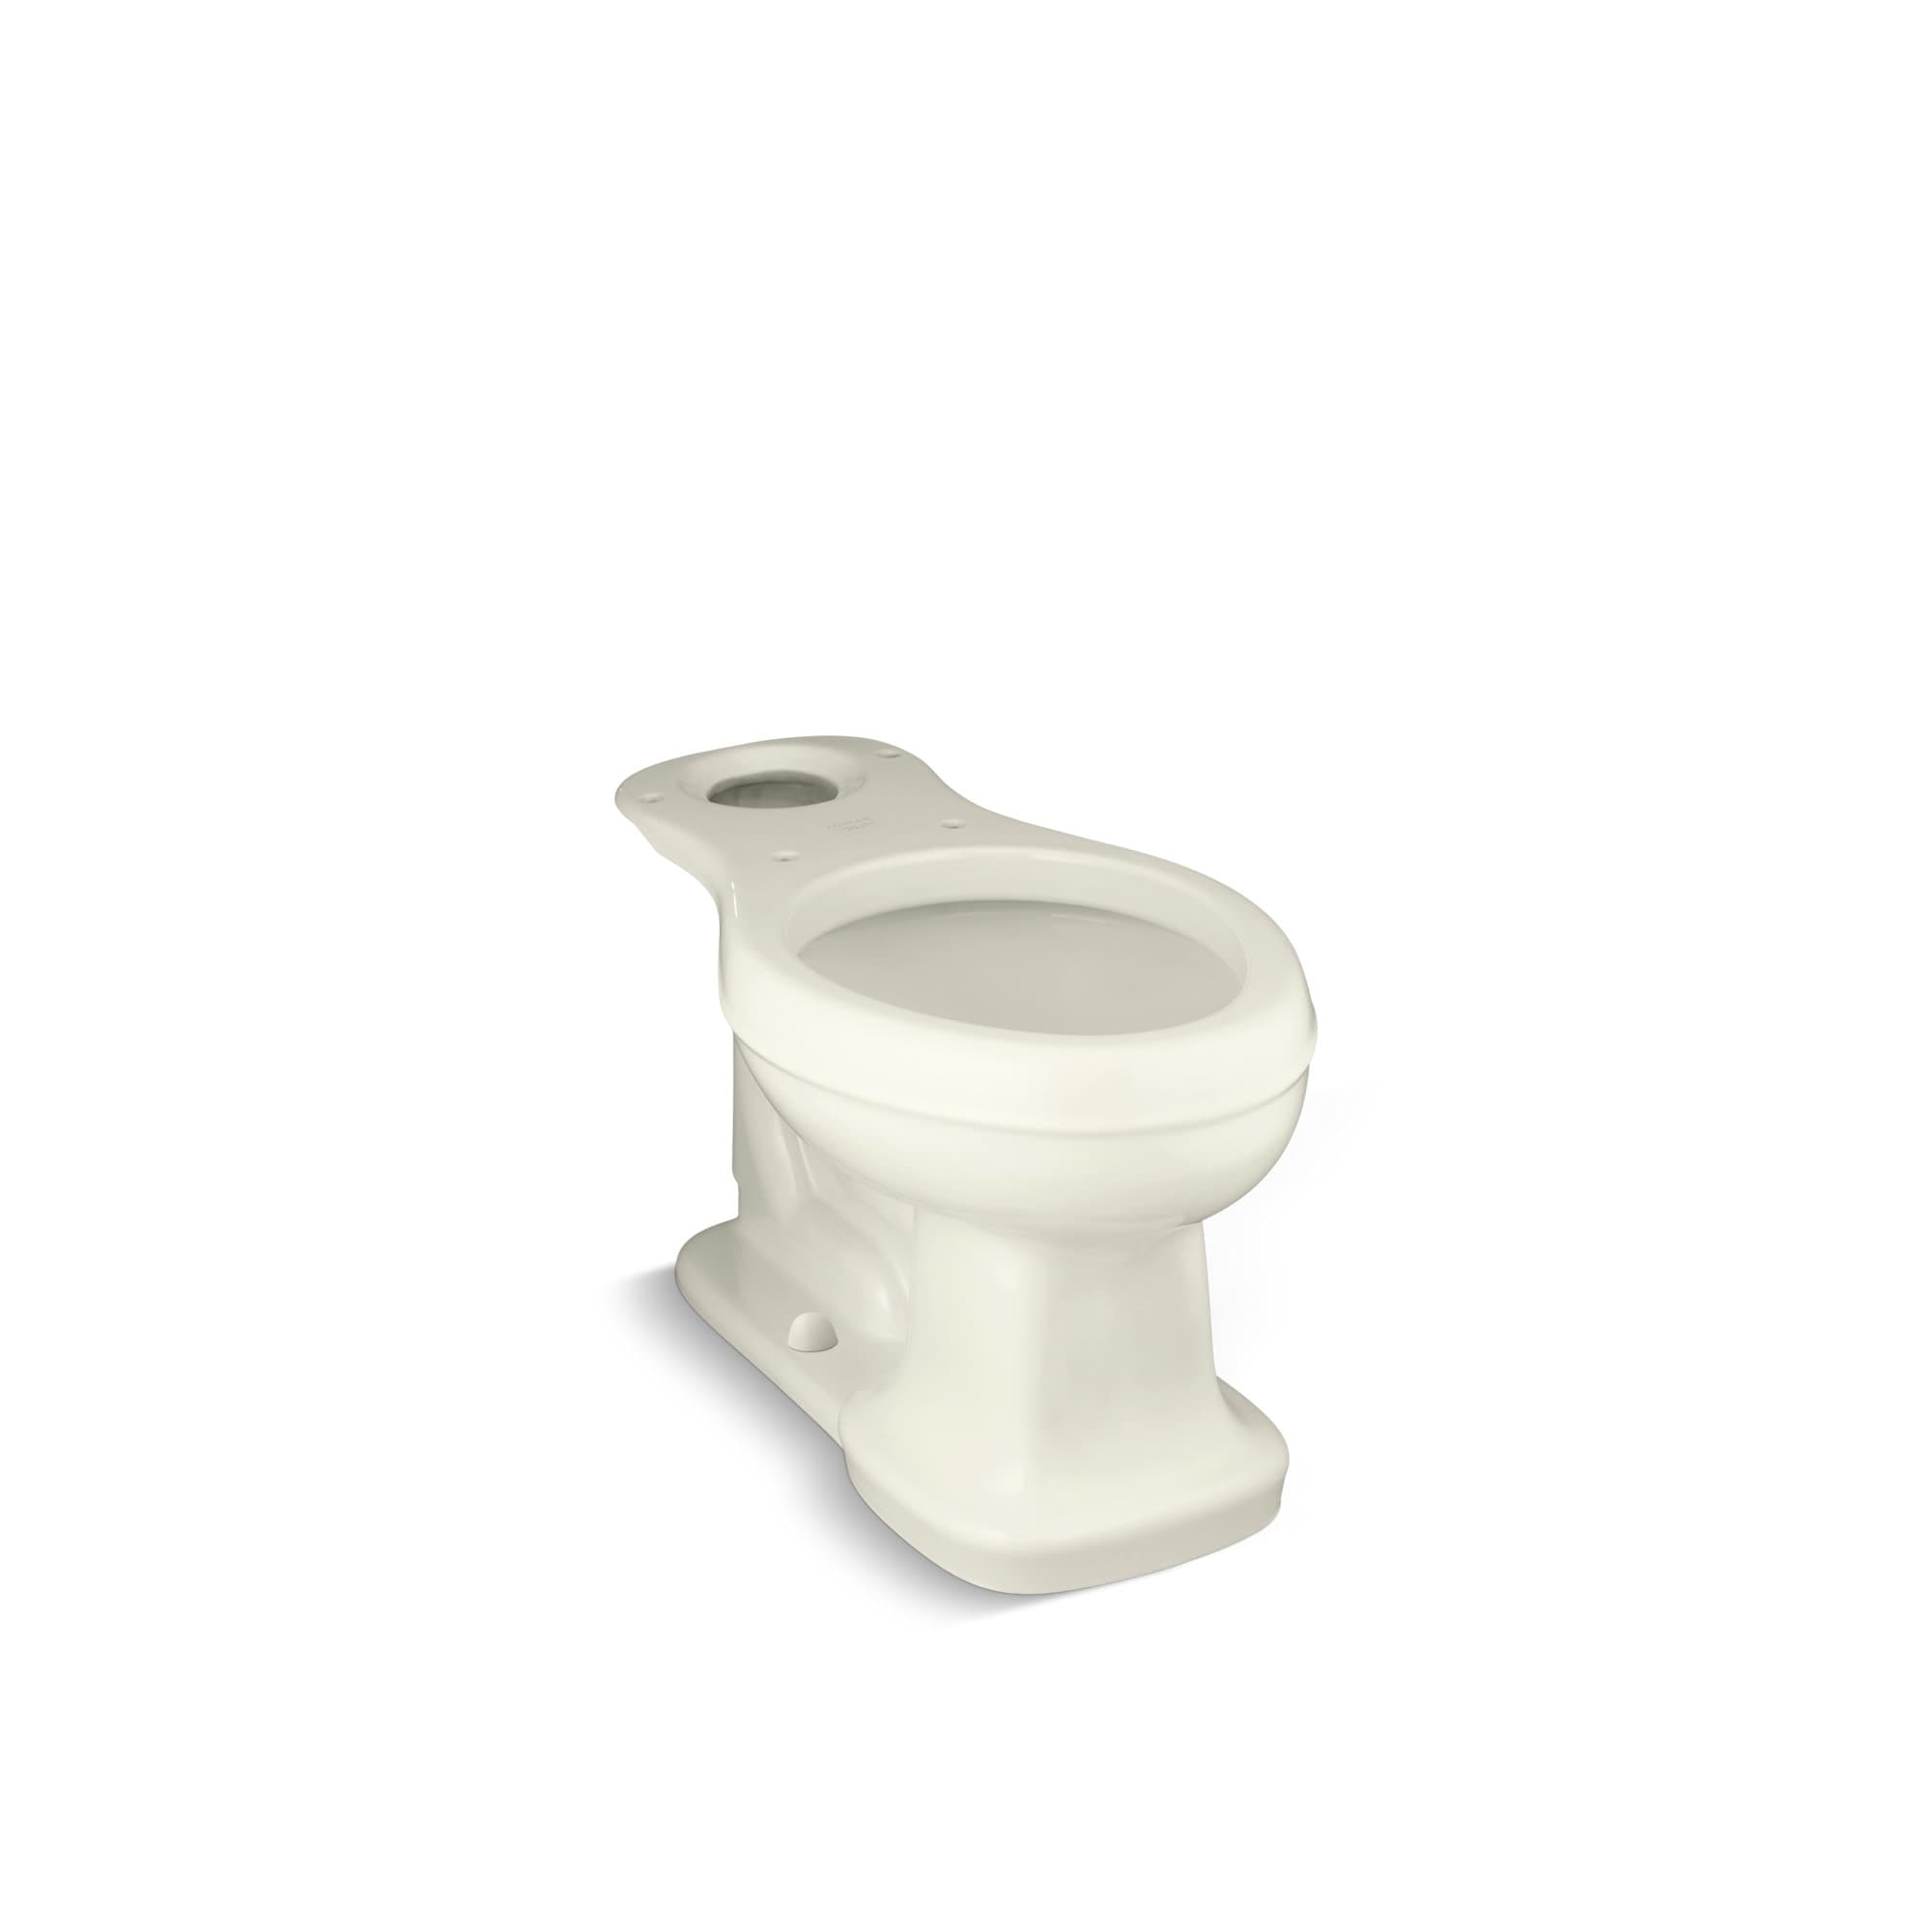 Brilliant Kohler K 4067 Elongated Comfort Height Toilet Bowl Only From The Bancroft Collection Forskolin Free Trial Chair Design Images Forskolin Free Trialorg